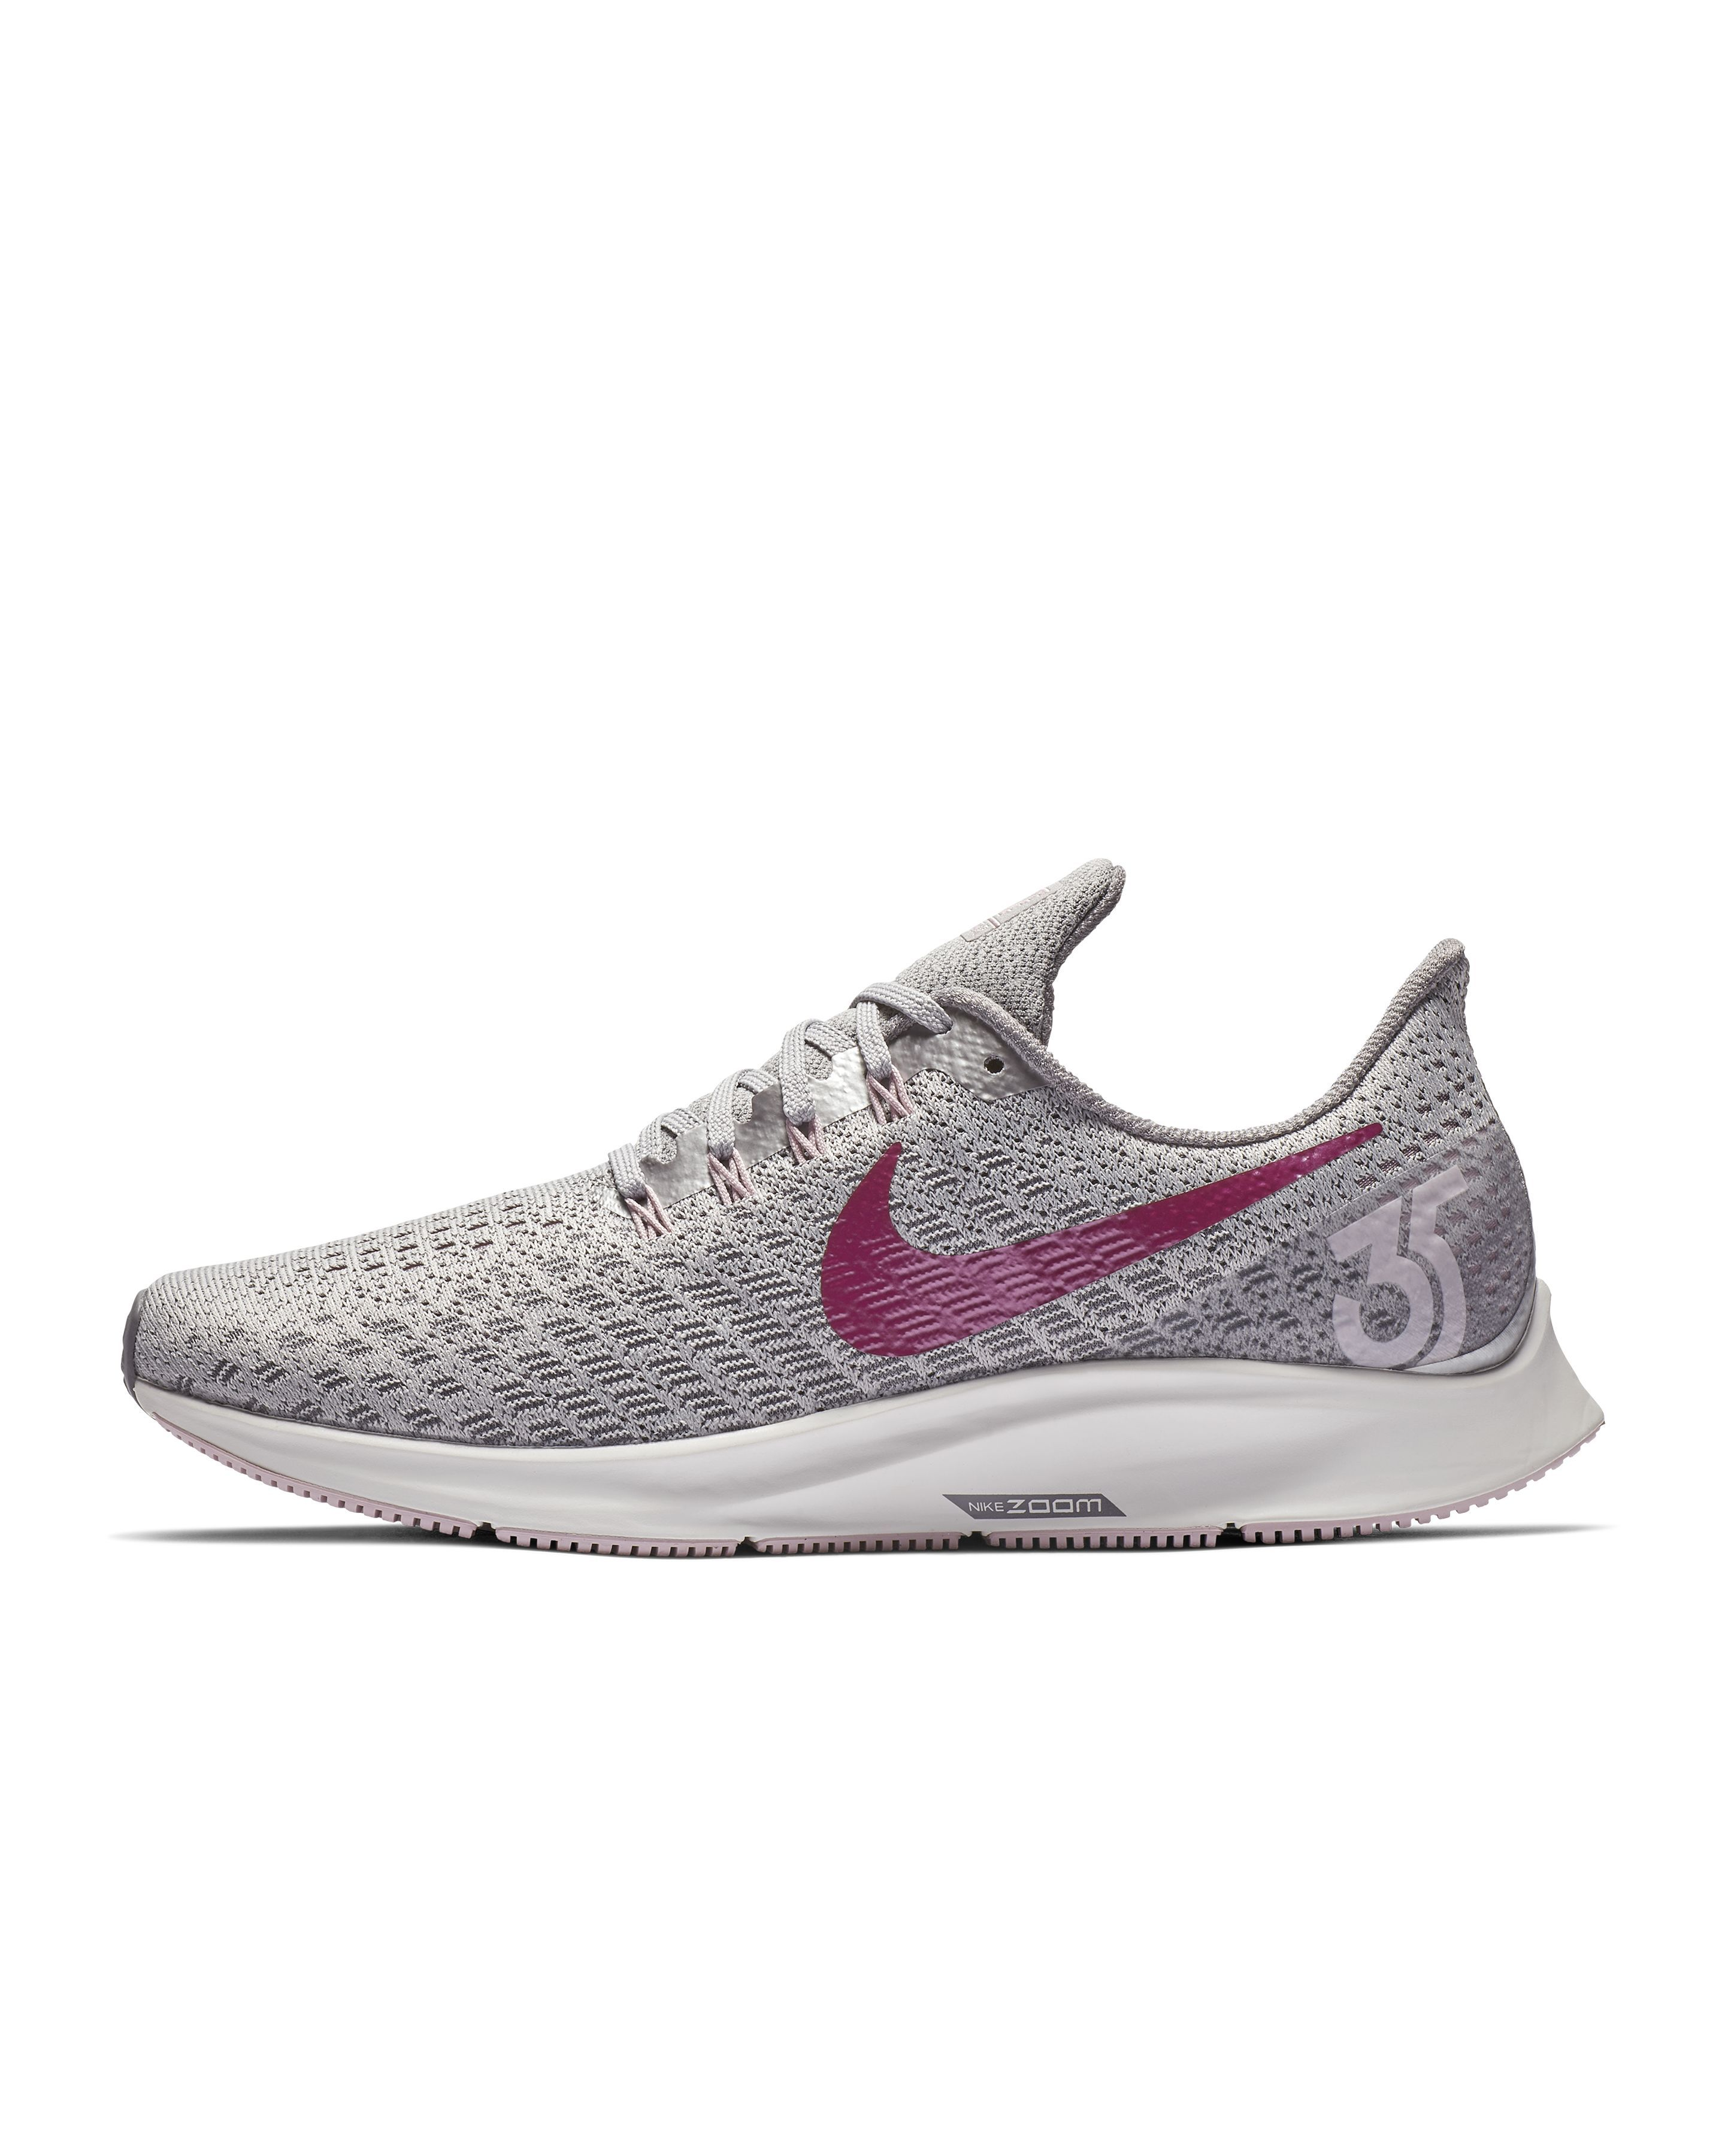 800482ca3 Nike Shoe Sale — Deal on Nike Running Shoes April 2019